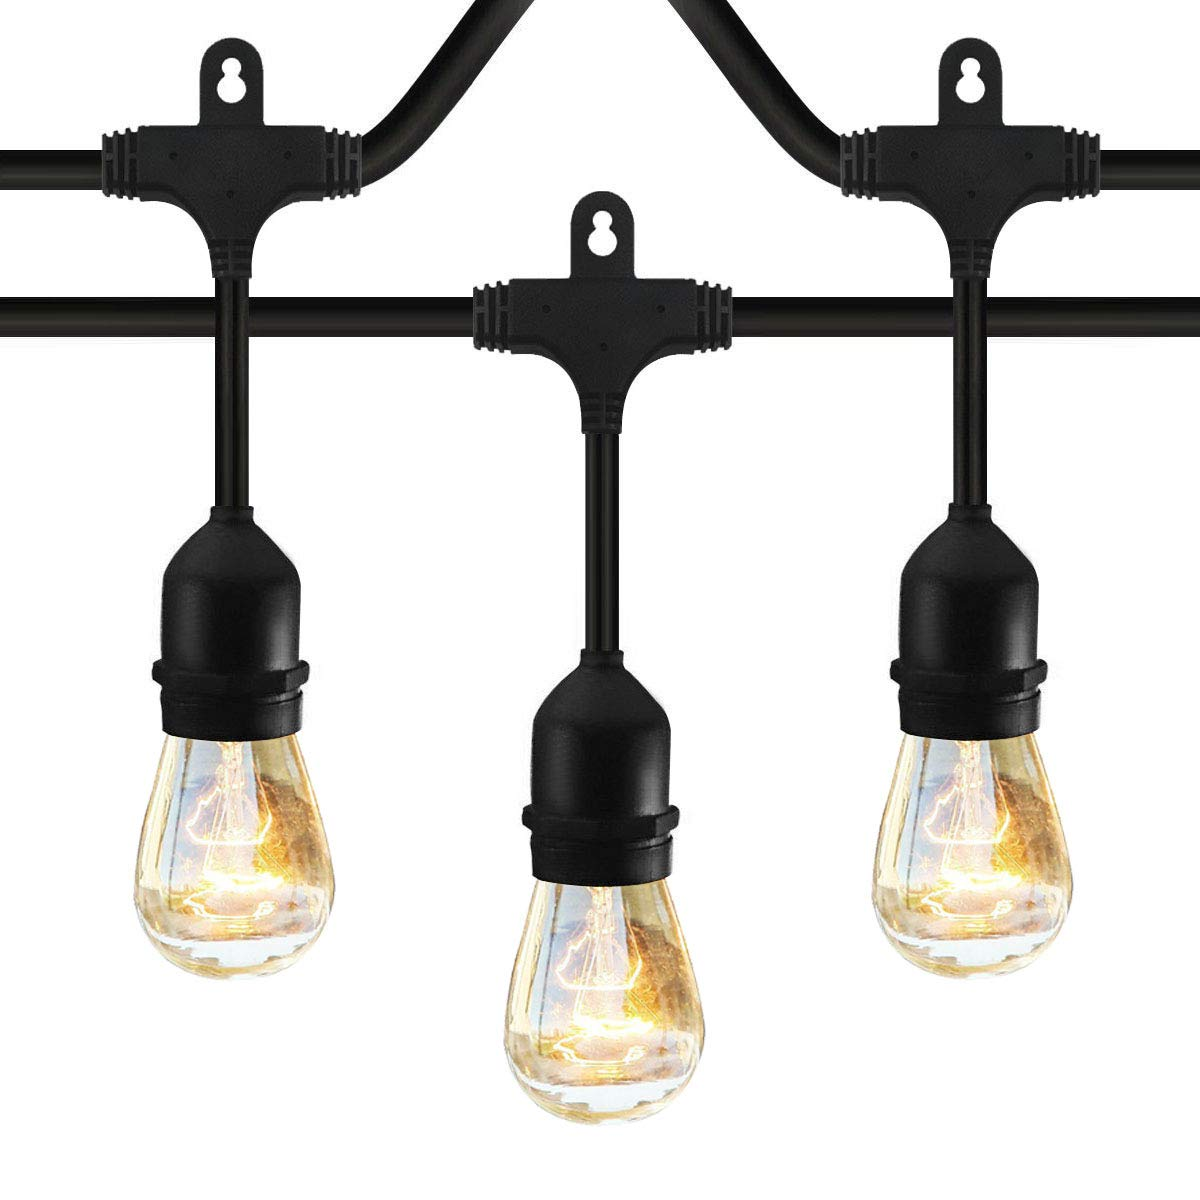 Classyke 48ft Indoor Outdoor String Lights for Patio Garden Yard Deck Cafe Dimmable Weatherproof Commercial Grade [UL Listed] - Incandescent